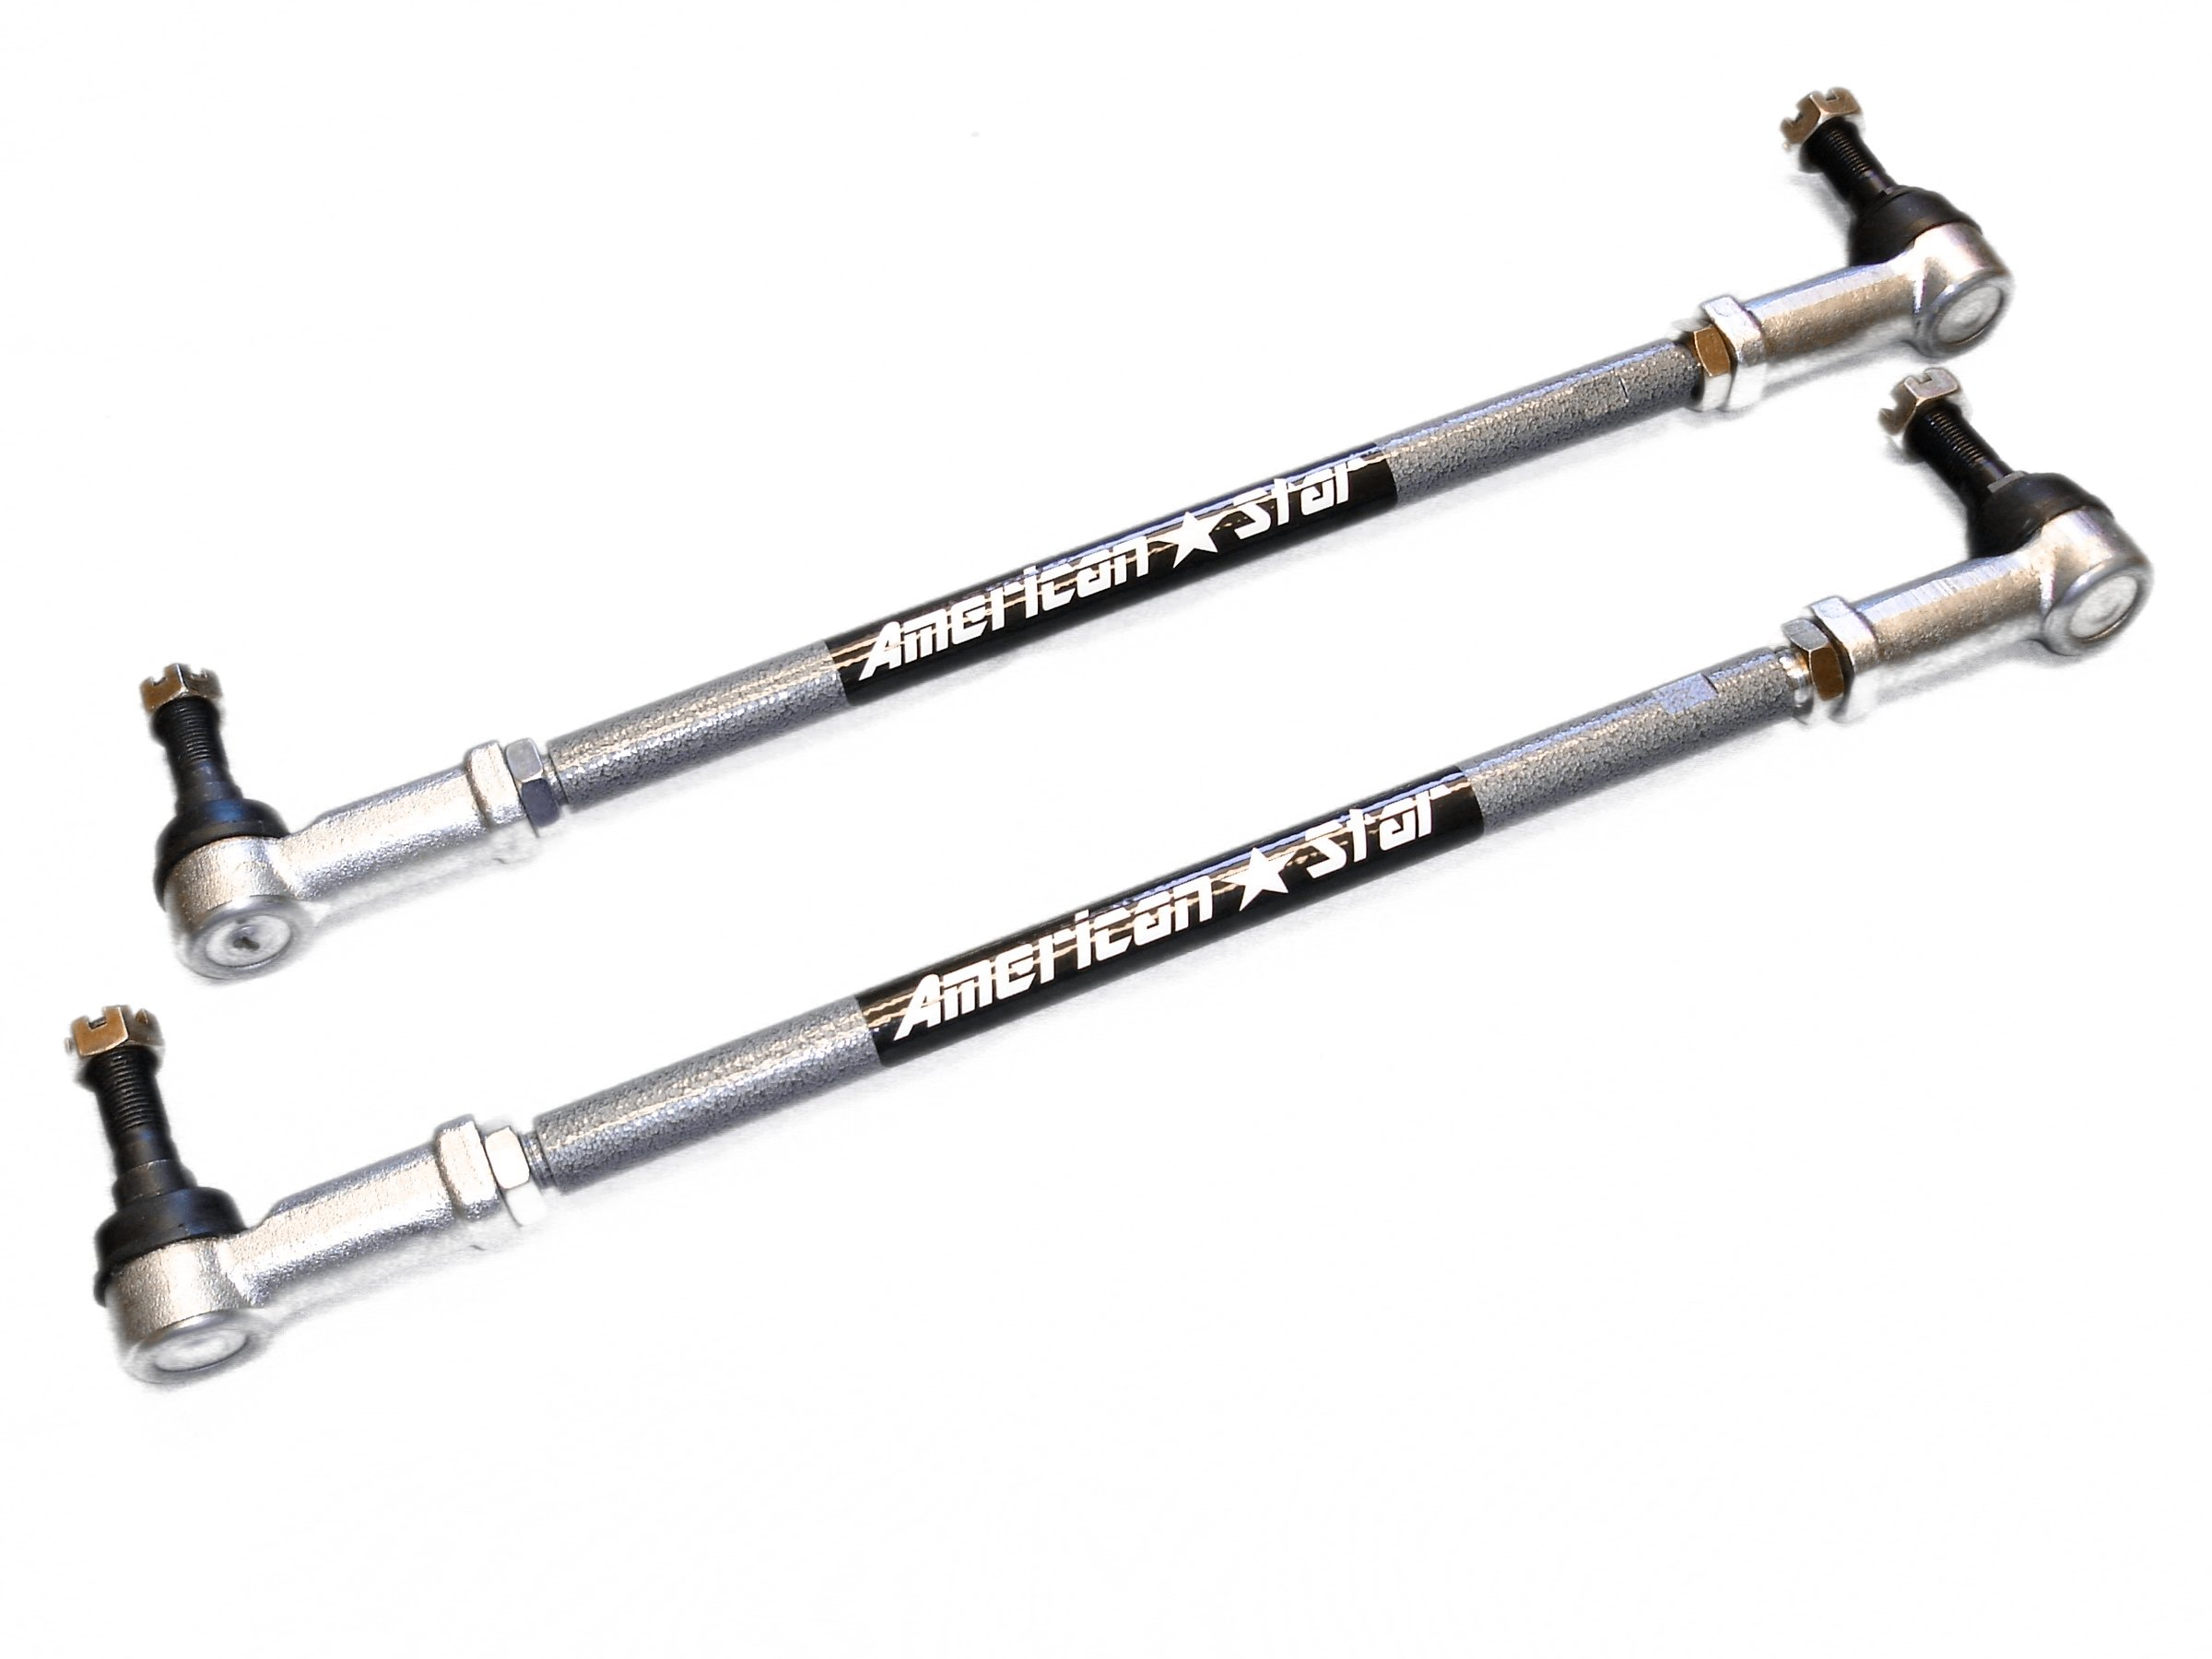 American Star 4130 Chromoly Steel ATV Tie Rod Upgrade Kit